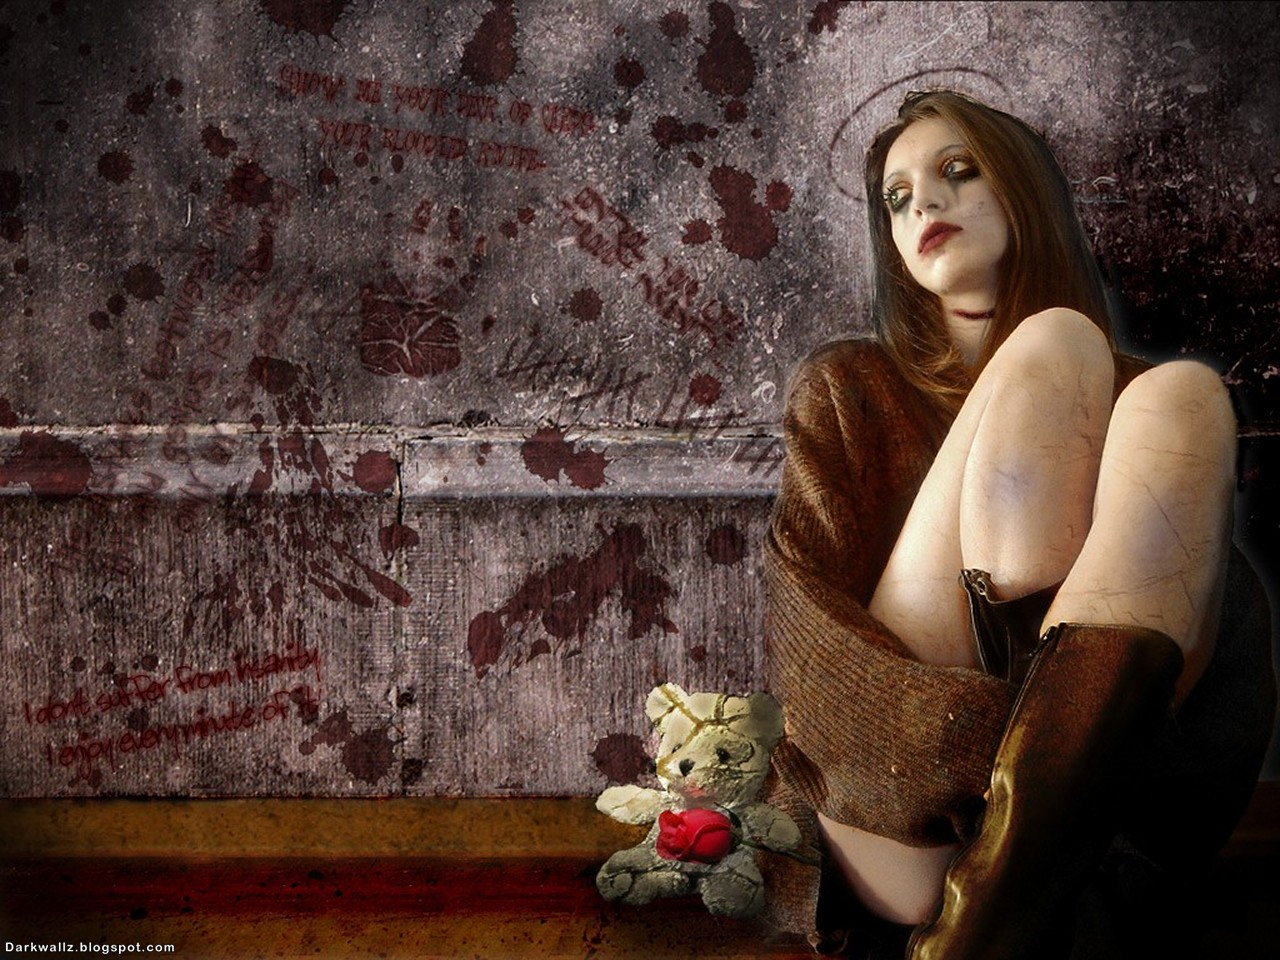 Lonely Gothic Girl With Teddy Bear | Dark Wallpaper Download